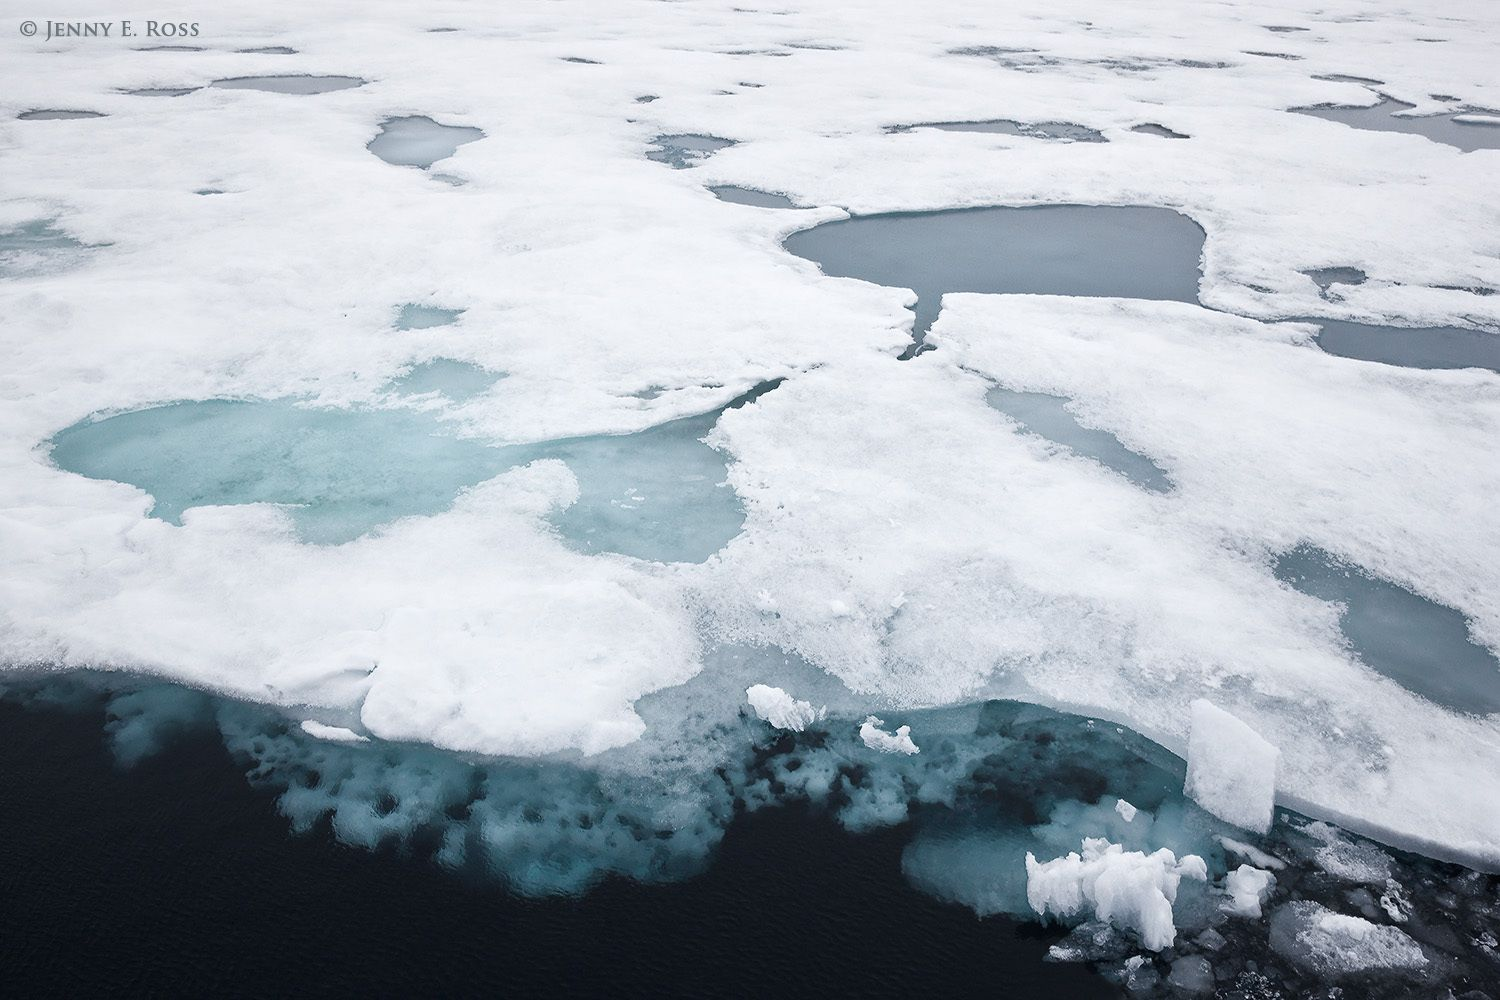 Melting Arctic Sea Ice Near 82.5 Degrees North in Late Summer 2012